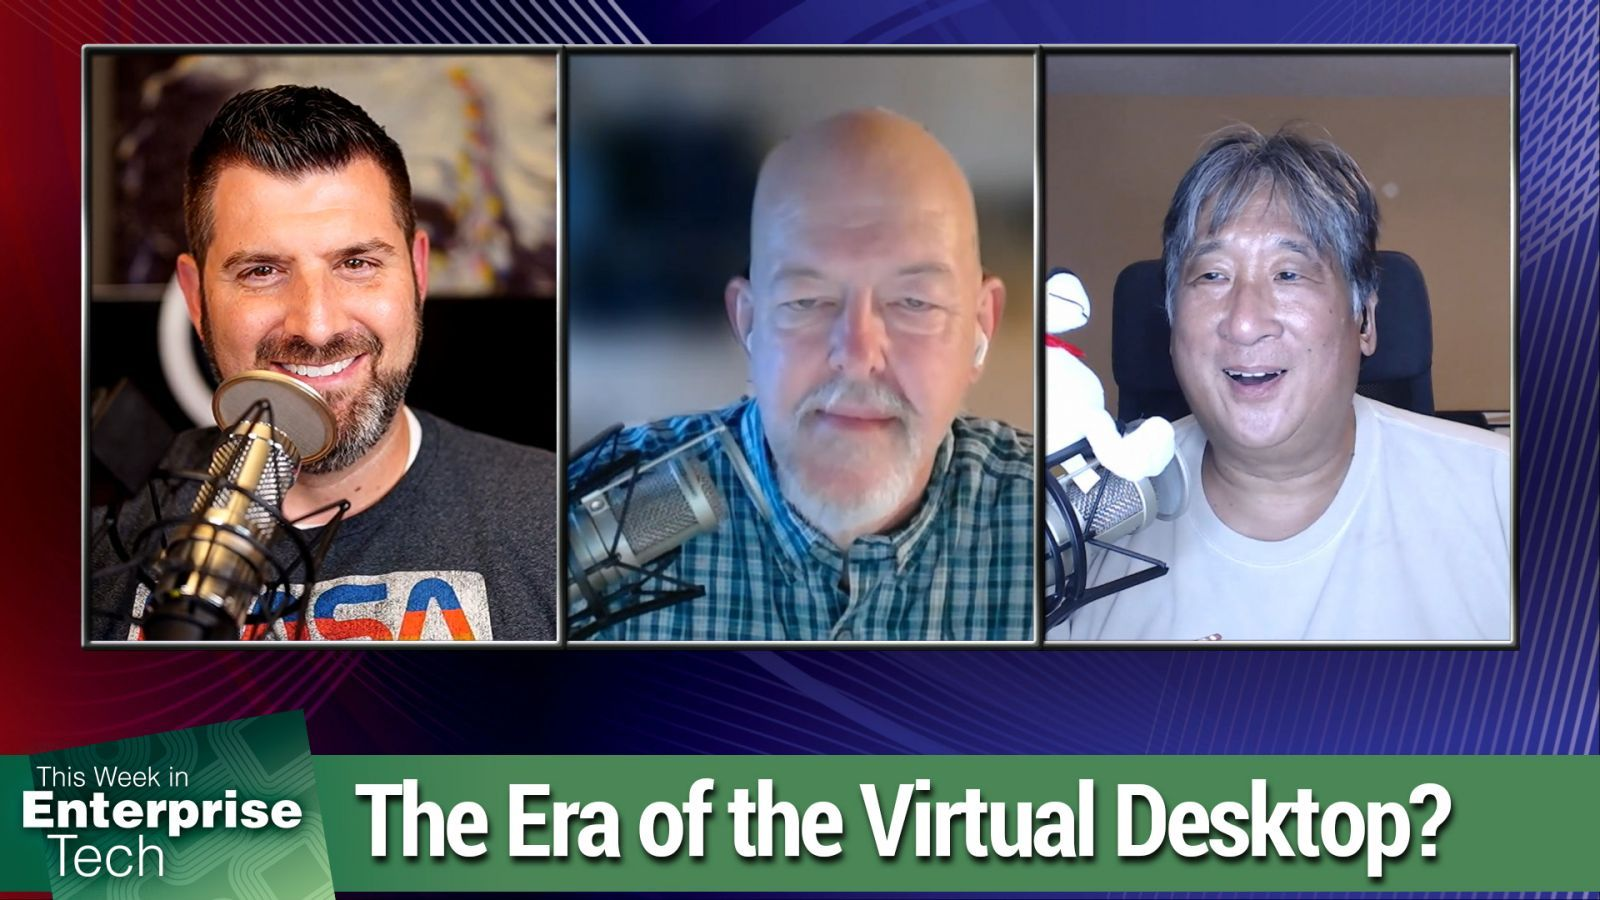 Paying the ransomware piper, security spending, and is it the era of the virtual desktop?